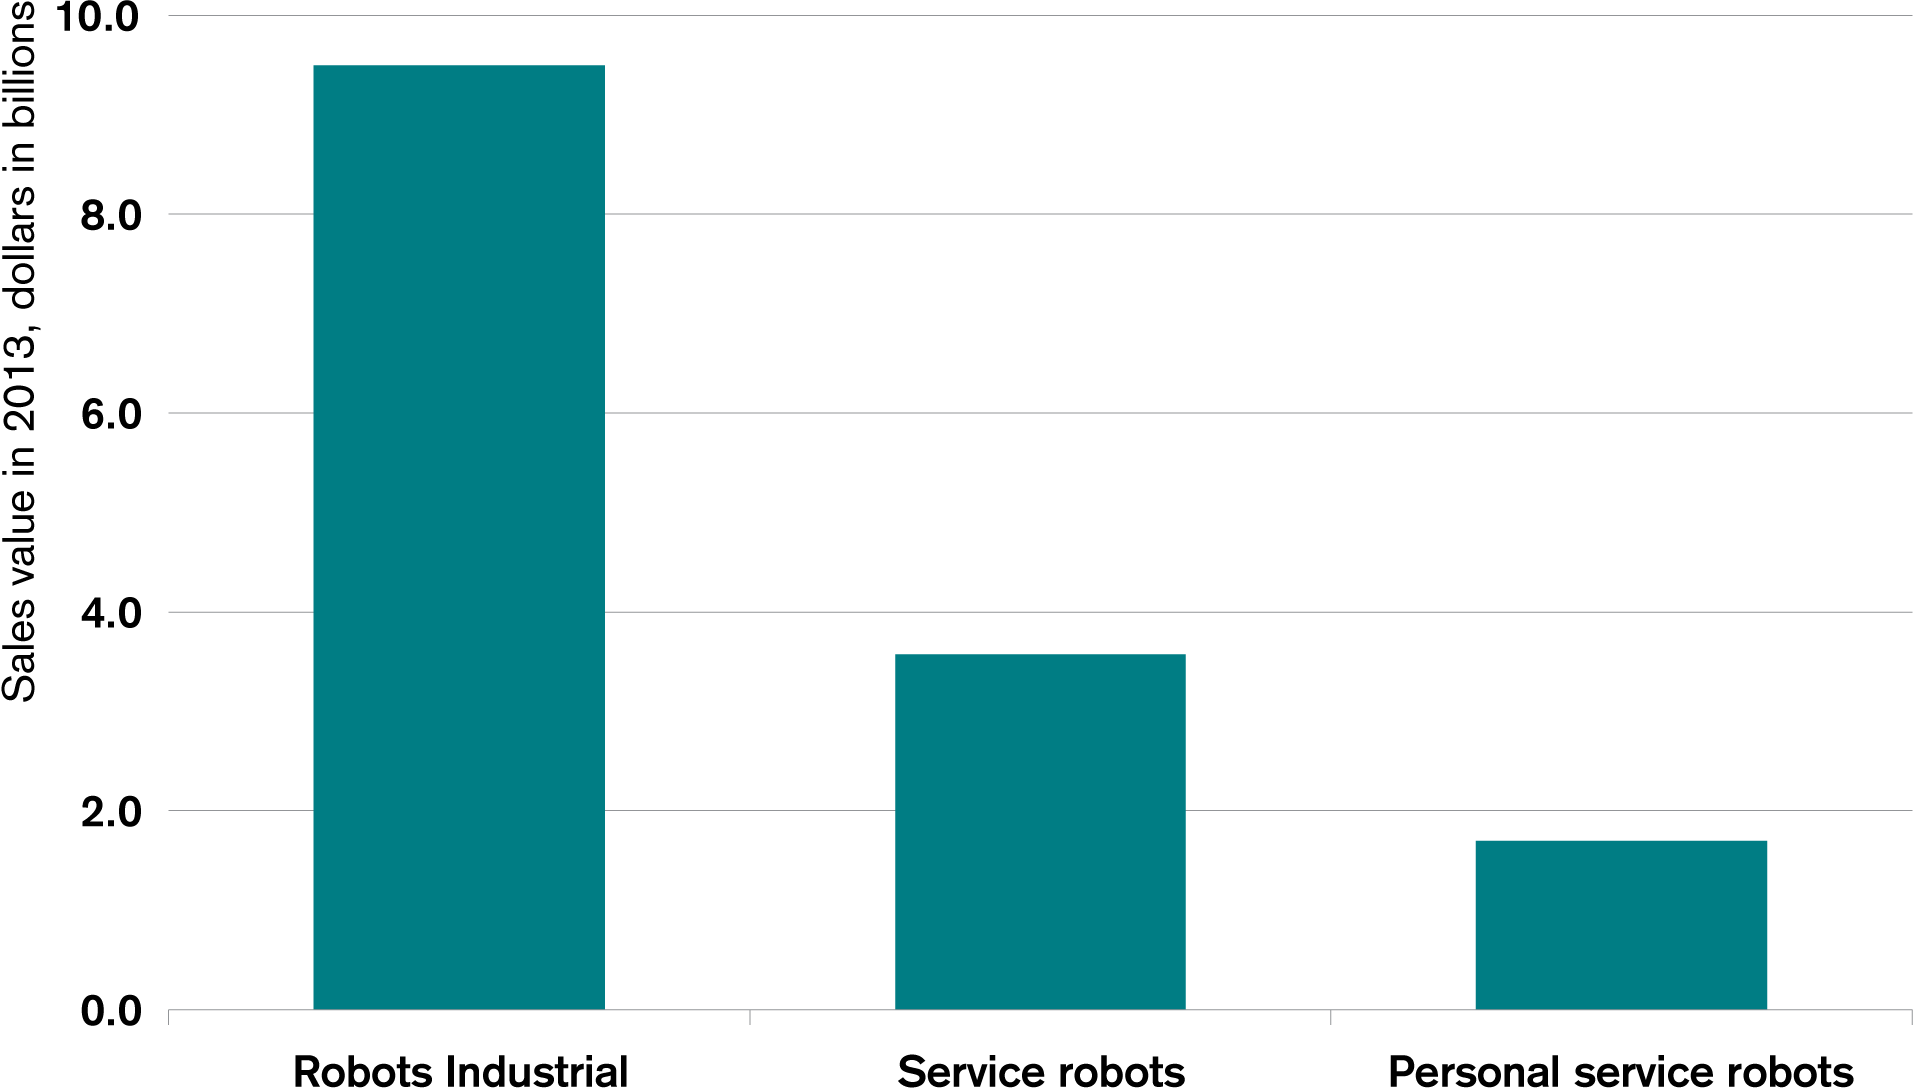 Robot sales as evidence of growing automation